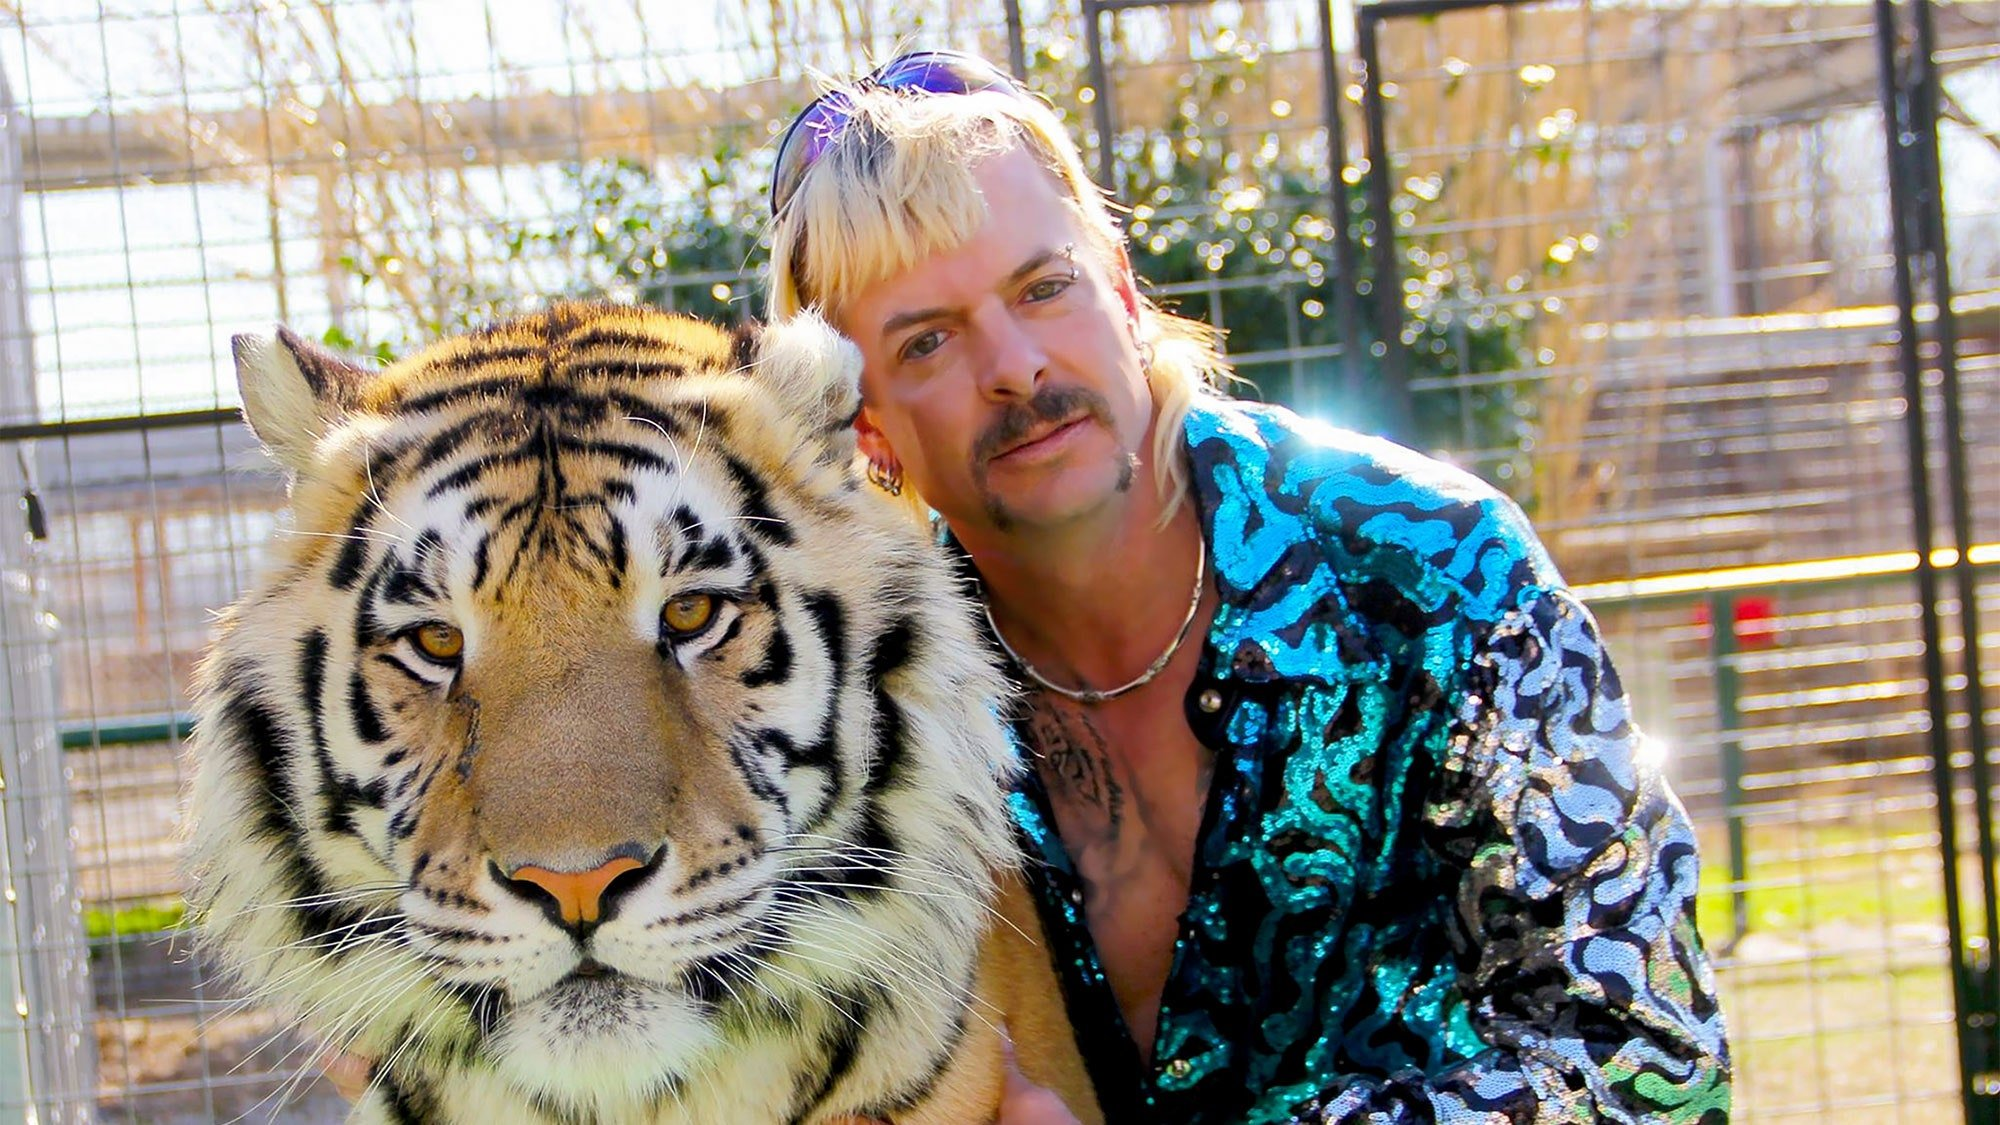 Joe Exotic Writes Letter To Kim Kardashian, Begging Her To Call Donald Trump And Ask To Pardon Him!